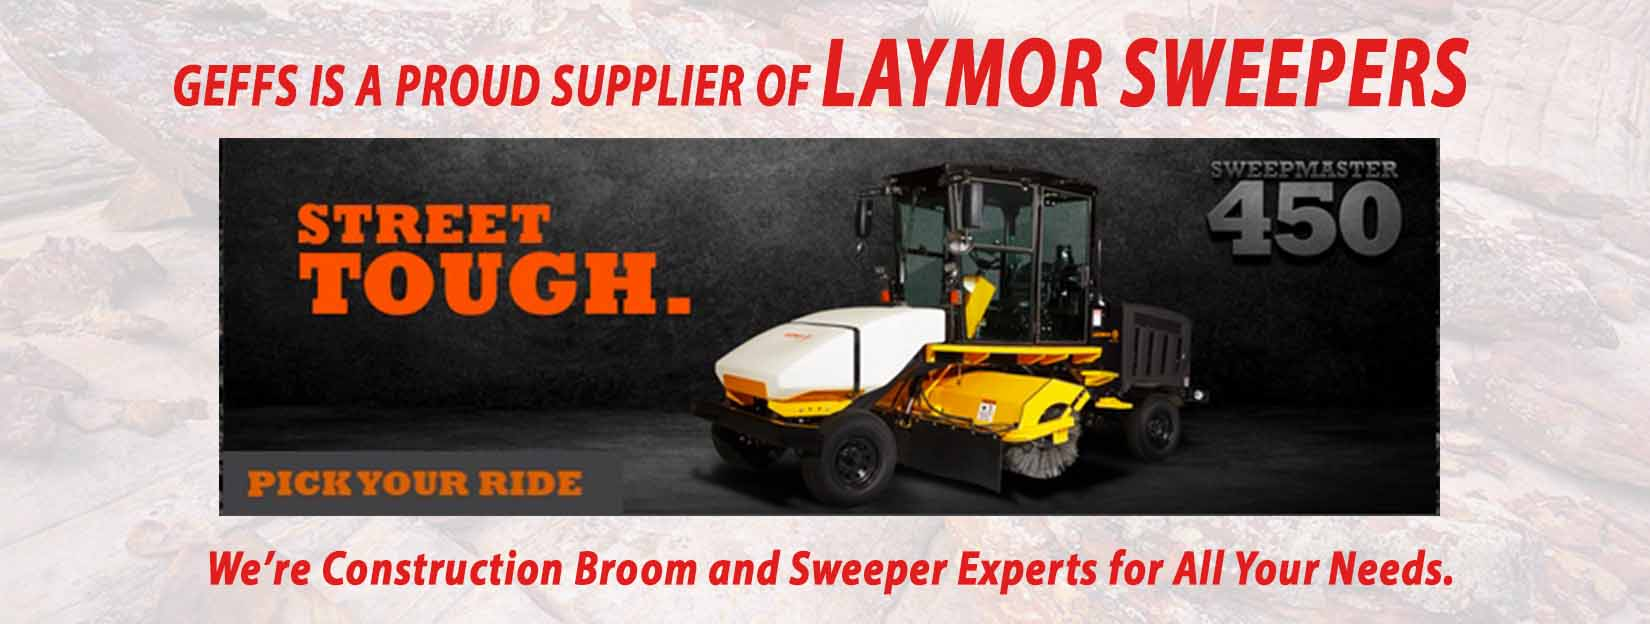 image of GEFFS LayMor Sweeper Slider